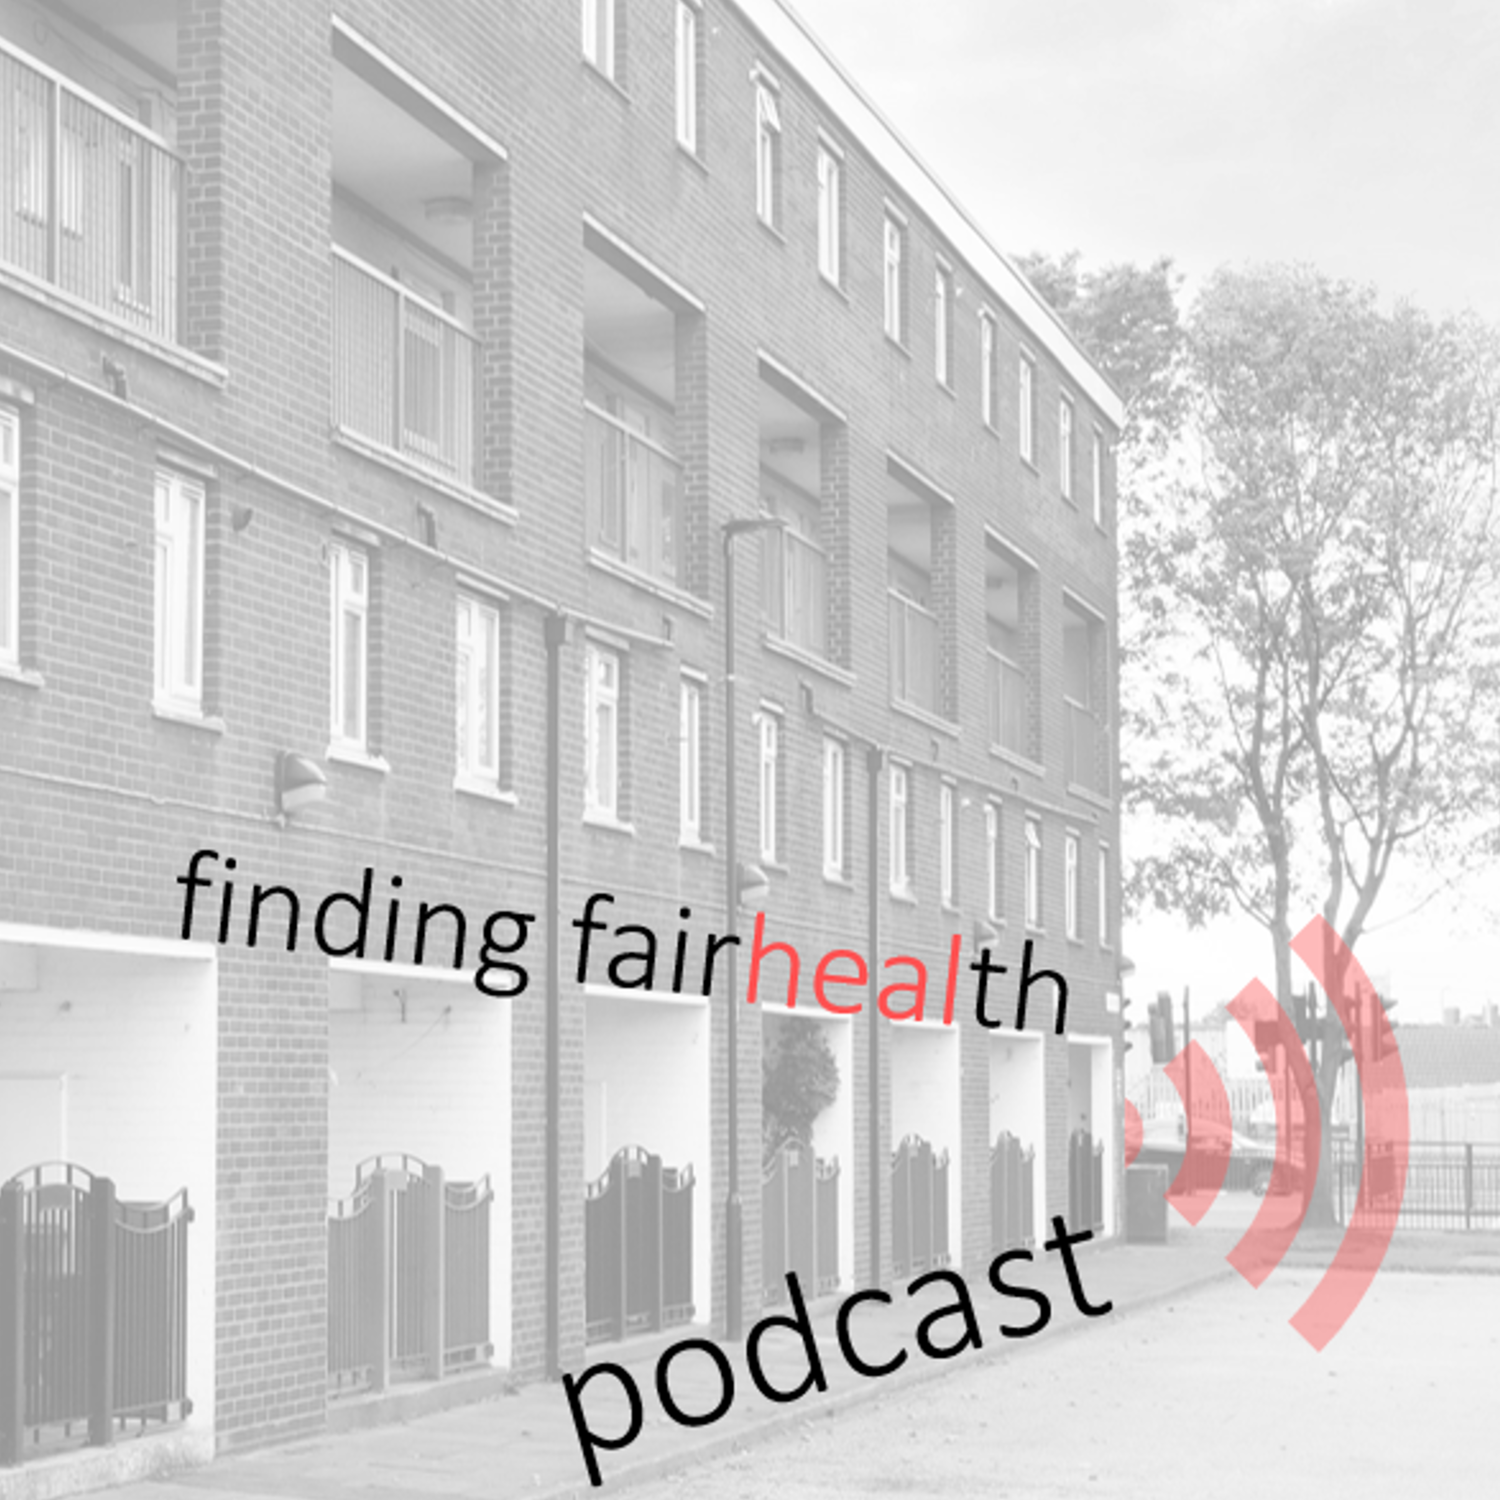 Finding fairhealth podcast